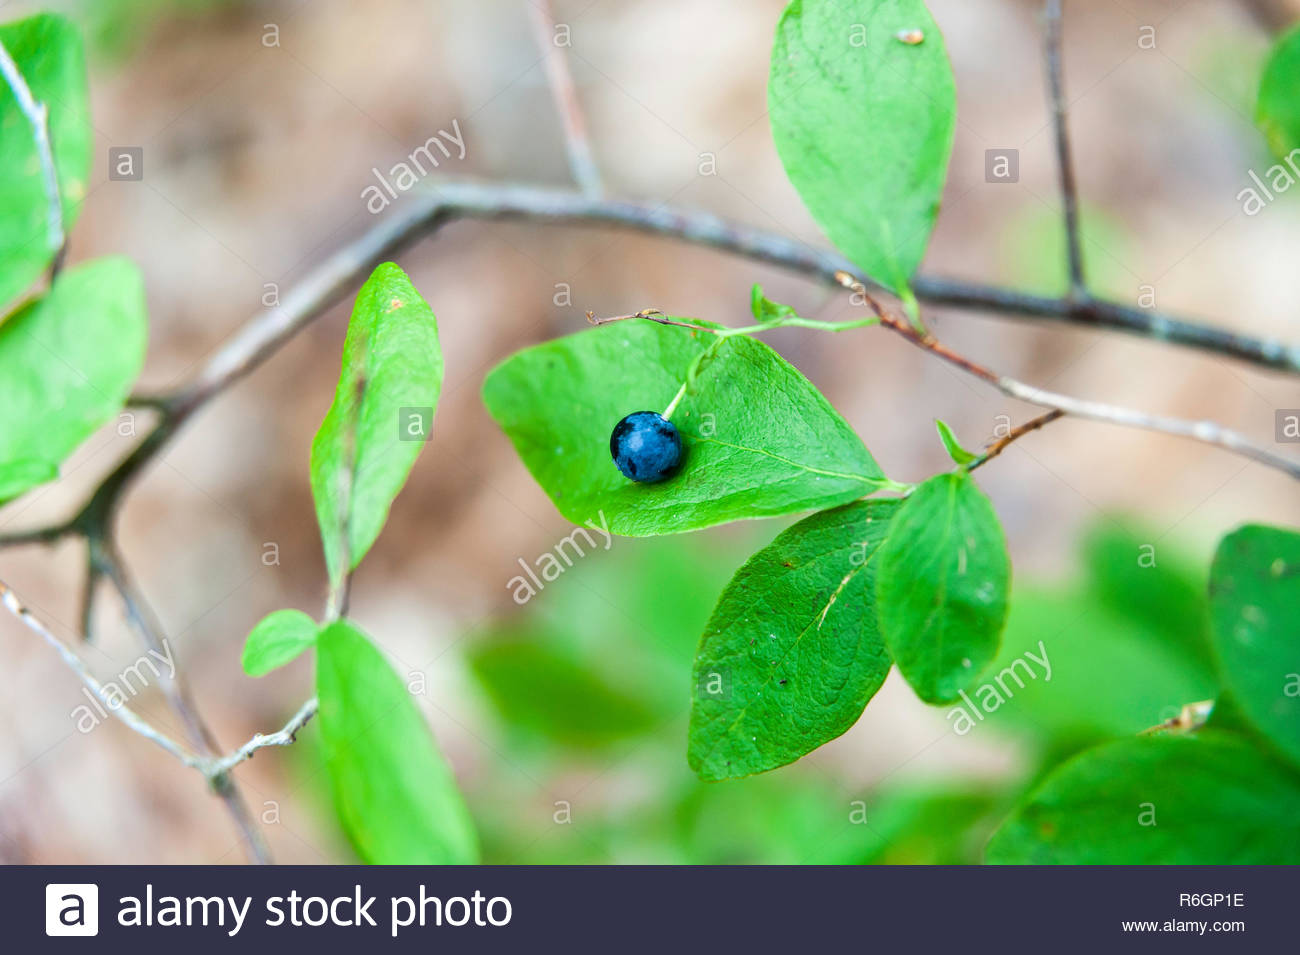 Lowbush Blueberry framed against one of its leaves - Stock Image